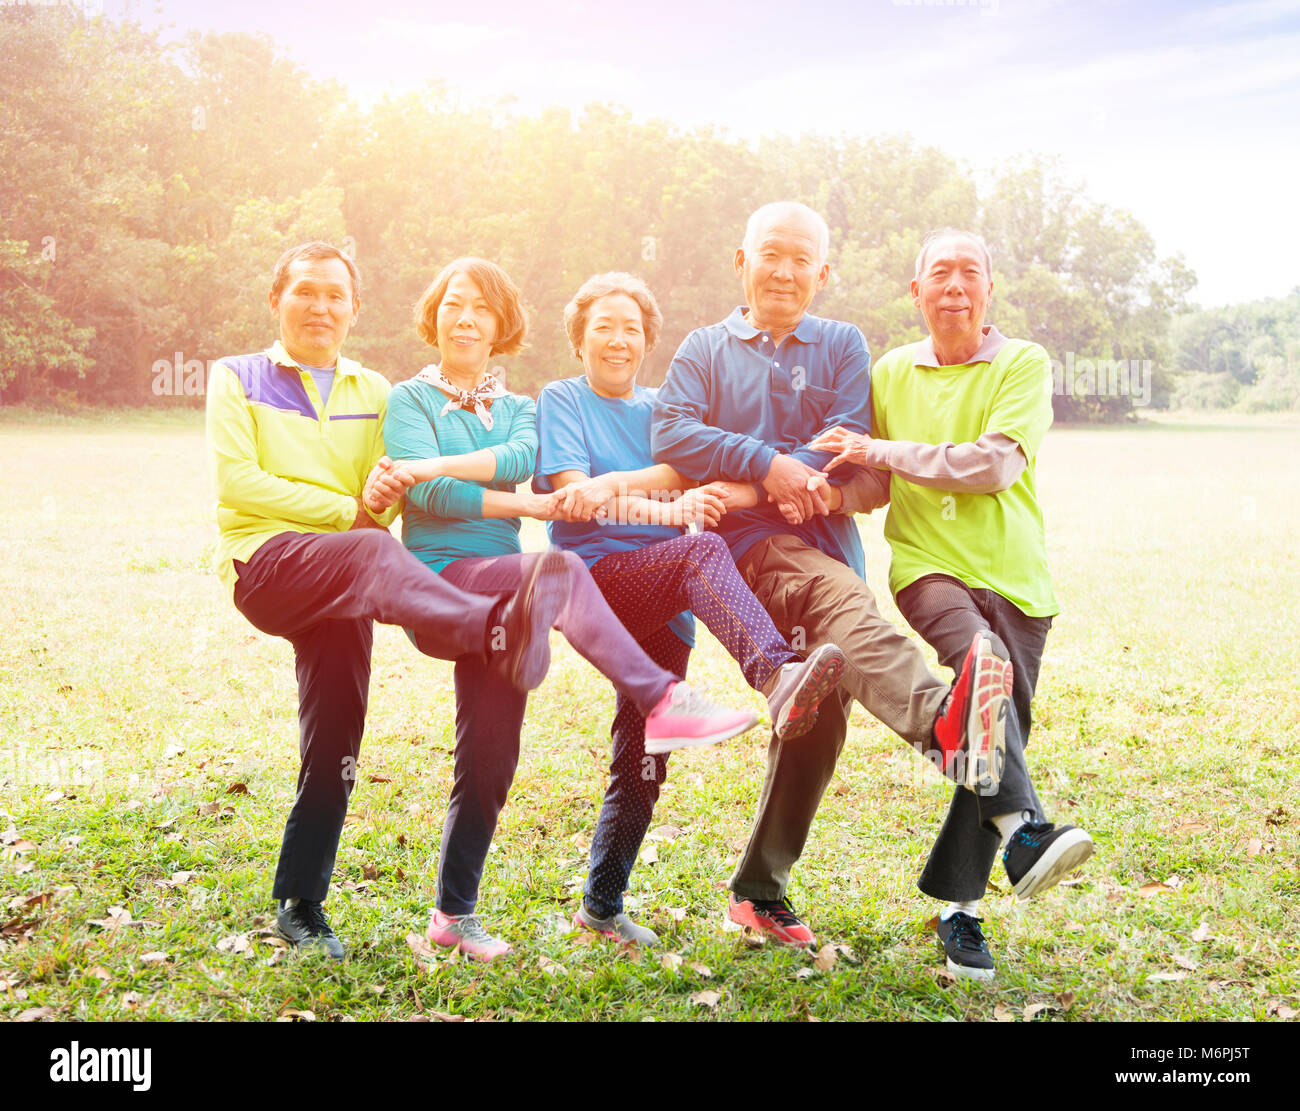 Senior Group Friends Exercise and dance in the park - Stock Image